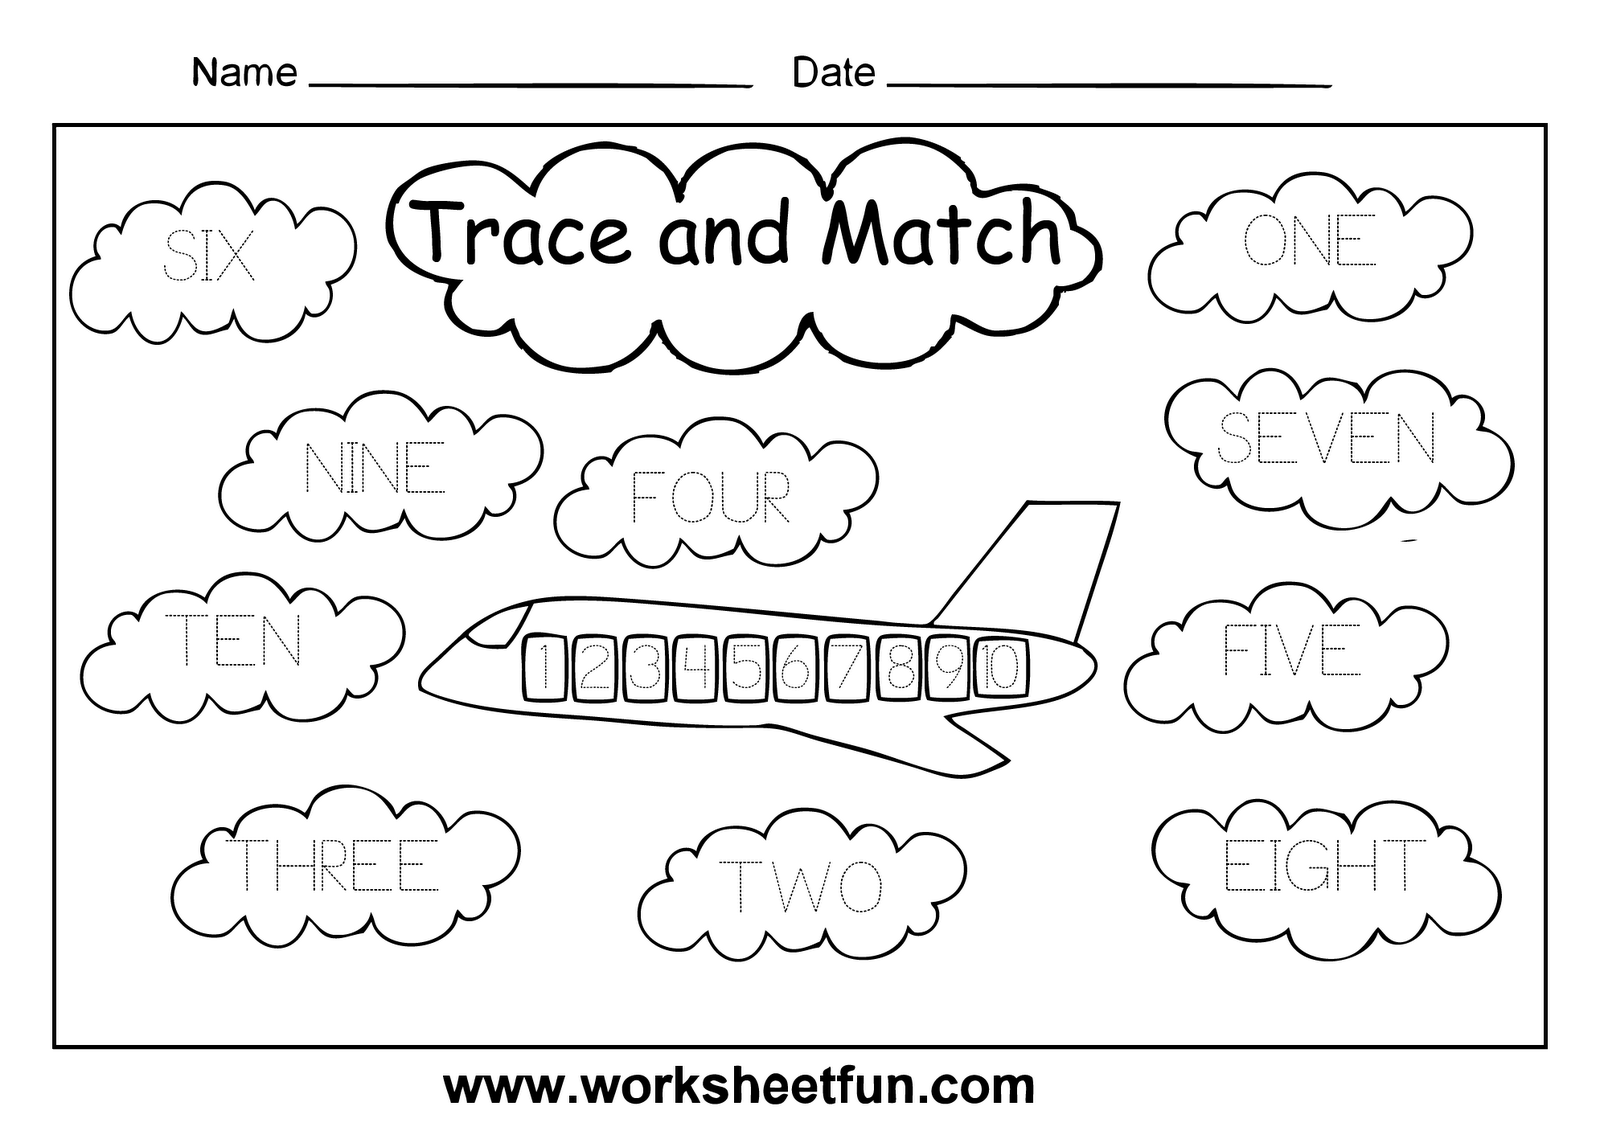 Weirdmailus  Gorgeous Worksheet Numbers    Reocurent With Licious Particle Theory Worksheet Besides Commas In Lists Worksheet Furthermore Free Printable Educational Worksheets For  Year Olds With Lovely Birthday Cake Worksheet Also Free  Grade Math Worksheets In Addition Preschool Math Worksheets Counting And Worksheet On Pronoun As Well As French Verbs Worksheet Additionally Child Support Worksheet Maryland From Reocurentcom With Weirdmailus  Licious Worksheet Numbers    Reocurent With Lovely Particle Theory Worksheet Besides Commas In Lists Worksheet Furthermore Free Printable Educational Worksheets For  Year Olds And Gorgeous Birthday Cake Worksheet Also Free  Grade Math Worksheets In Addition Preschool Math Worksheets Counting From Reocurentcom